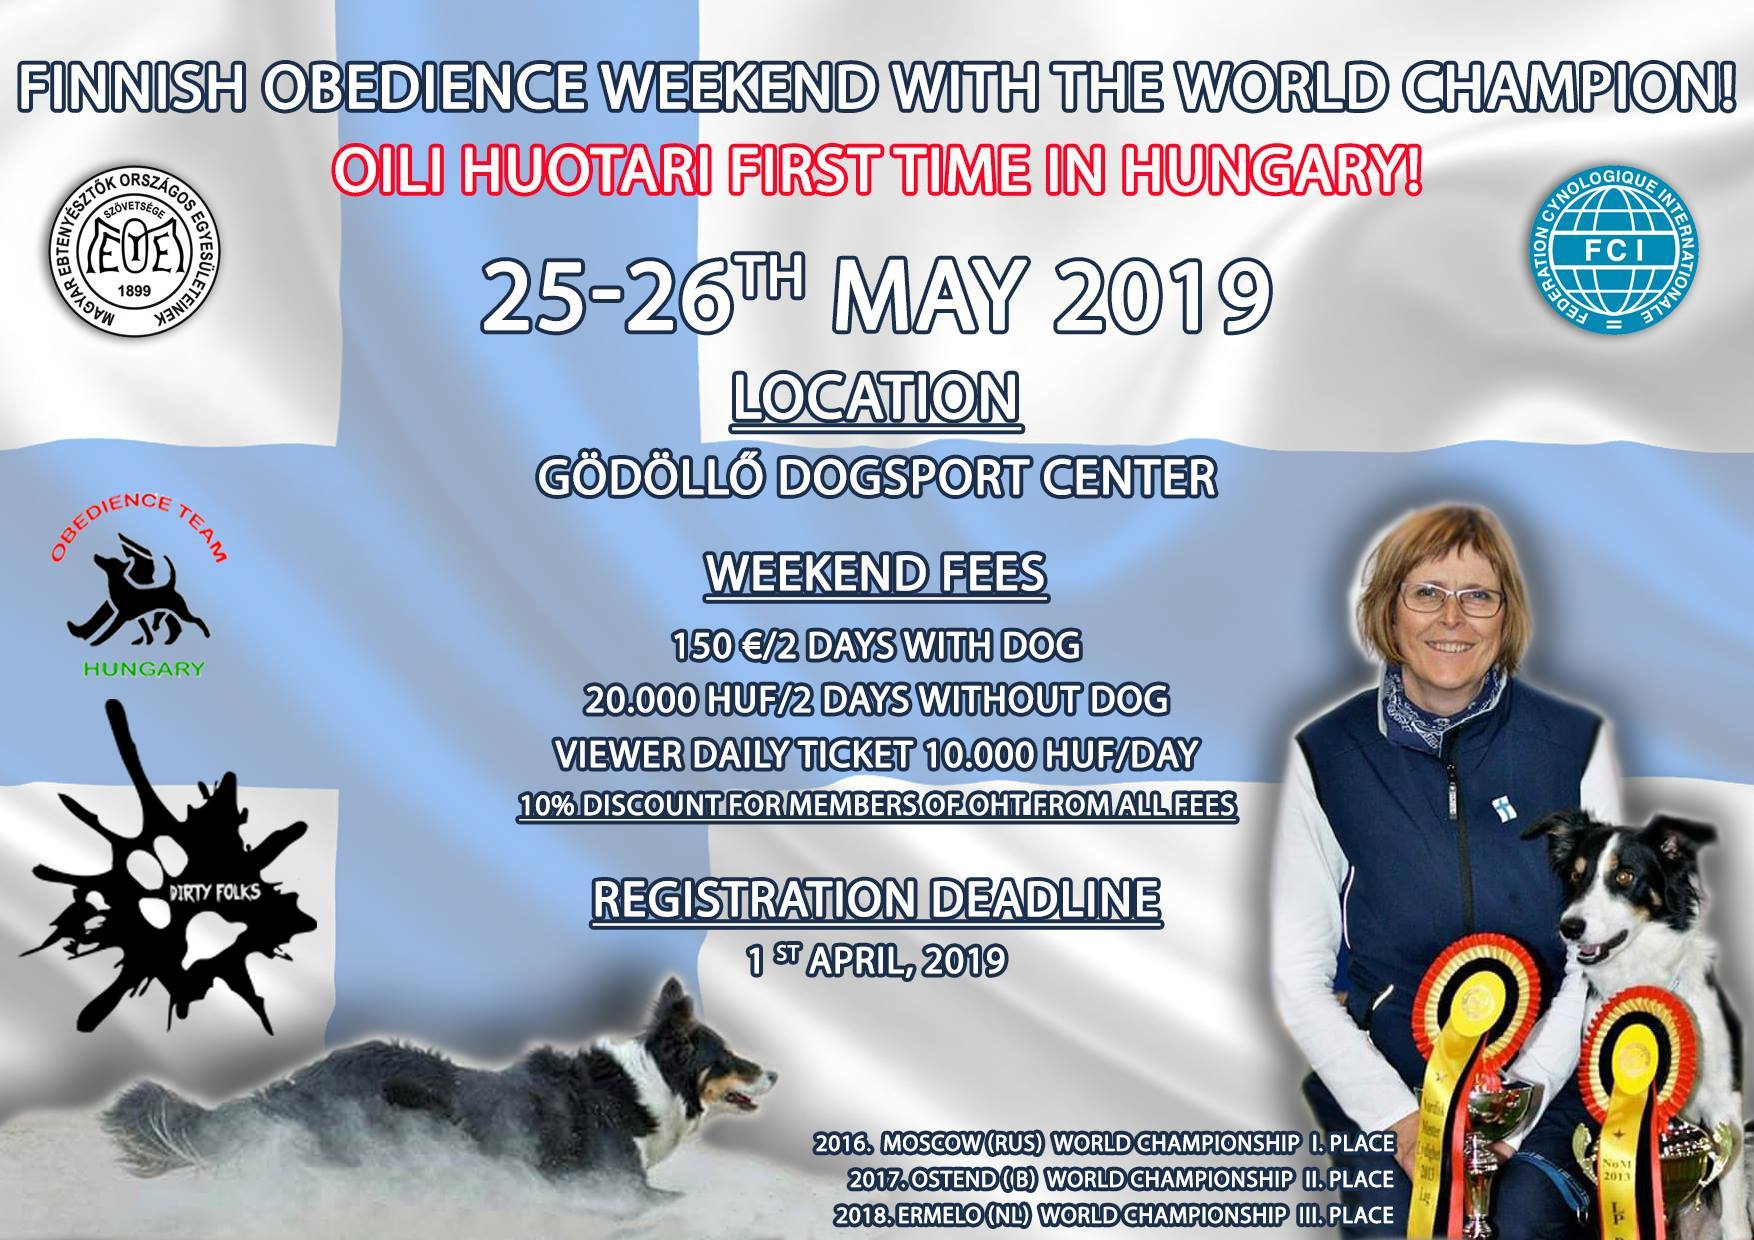 Oili Huotari Obedience Weekend